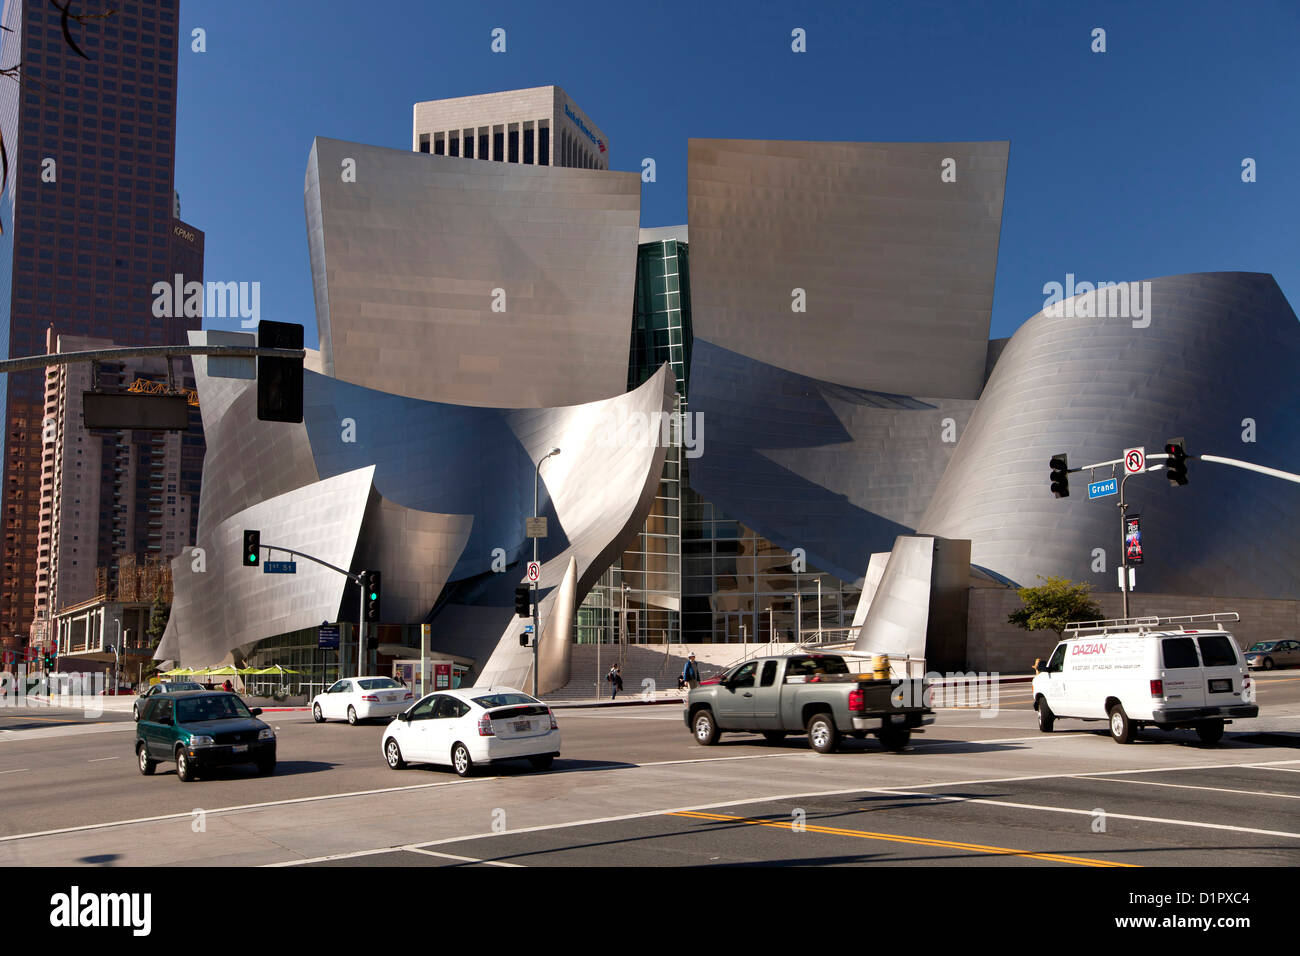 traffic at the Walt Disney Concert Hall, Downtown Los Angeles, California, United States of America, USA - Stock Image